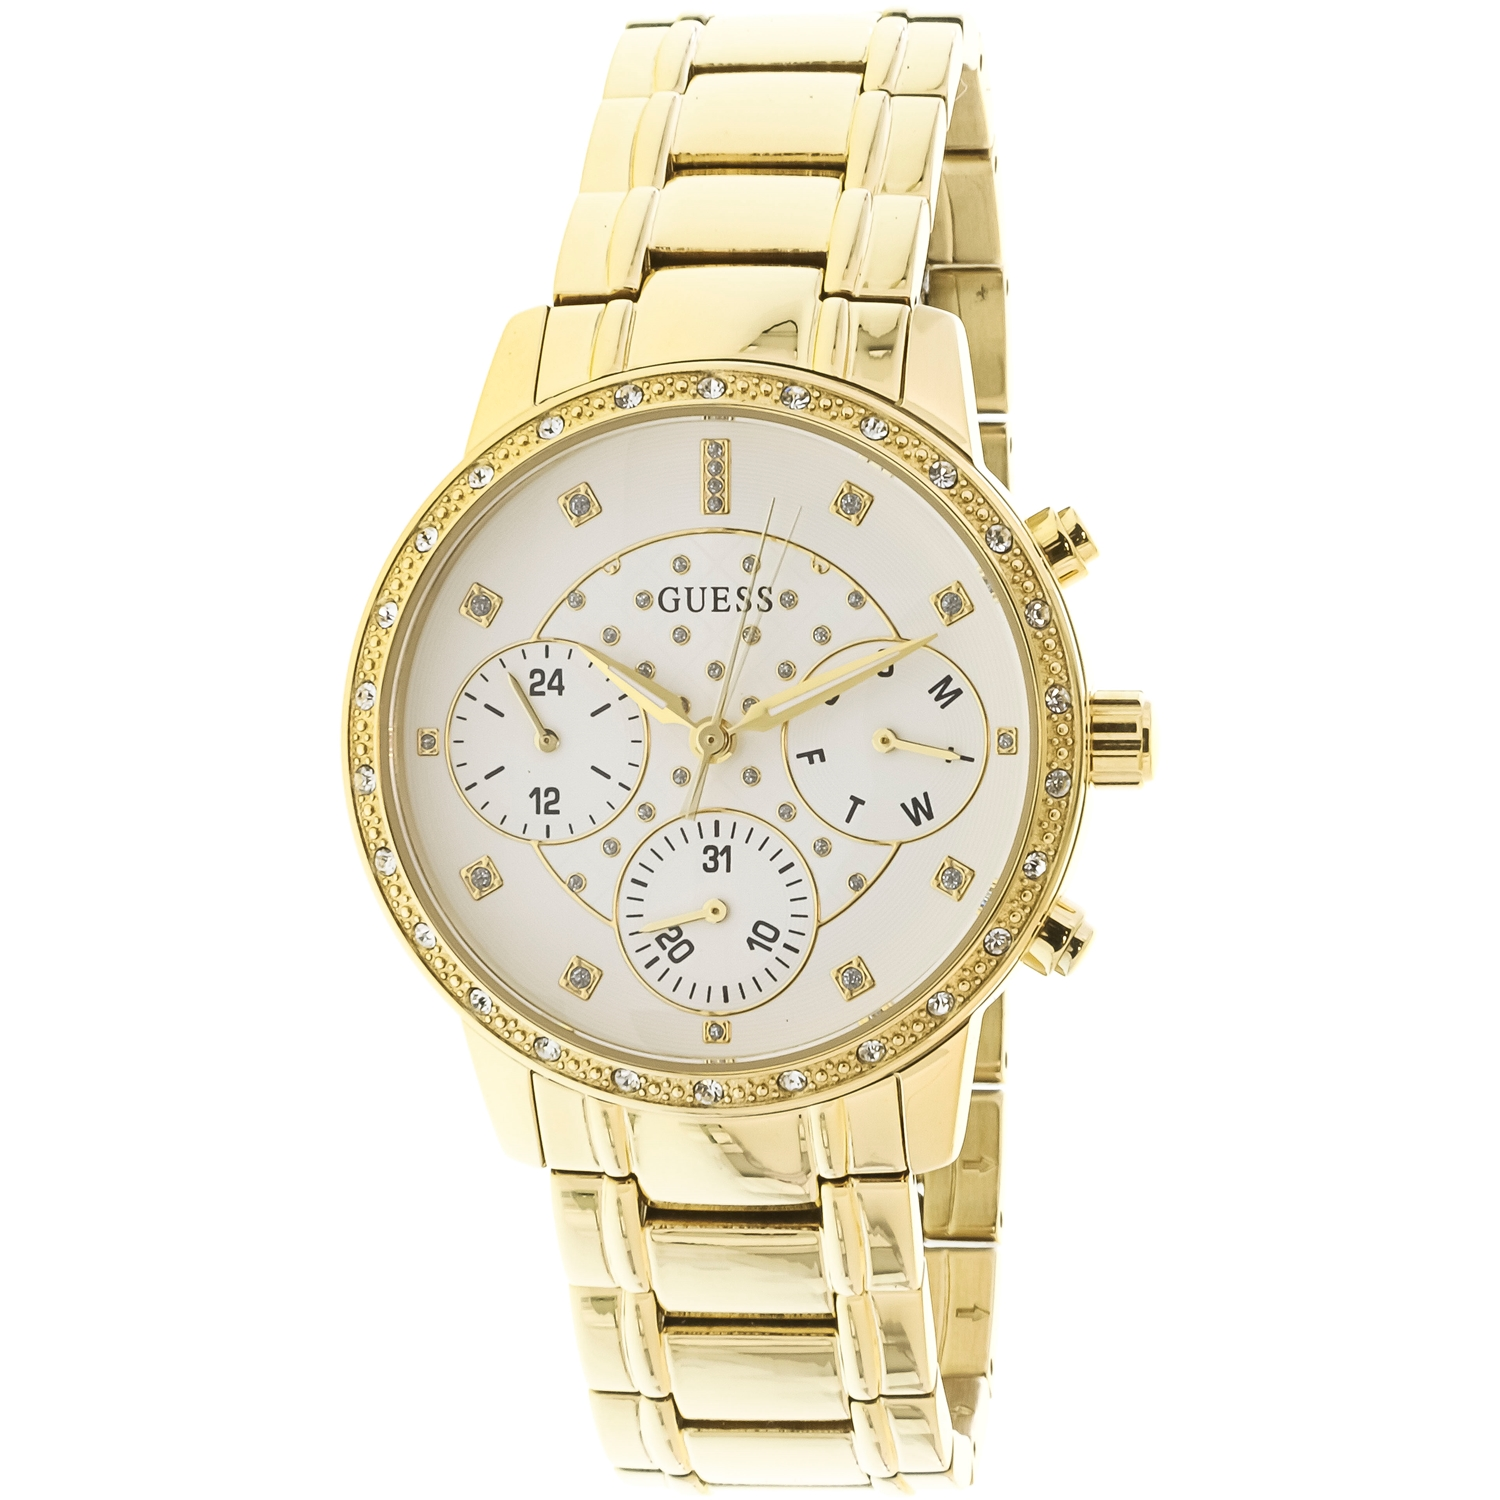 Guess U1022L2 Gold Stainless-Steel Japanese Quartz Fashion Watch